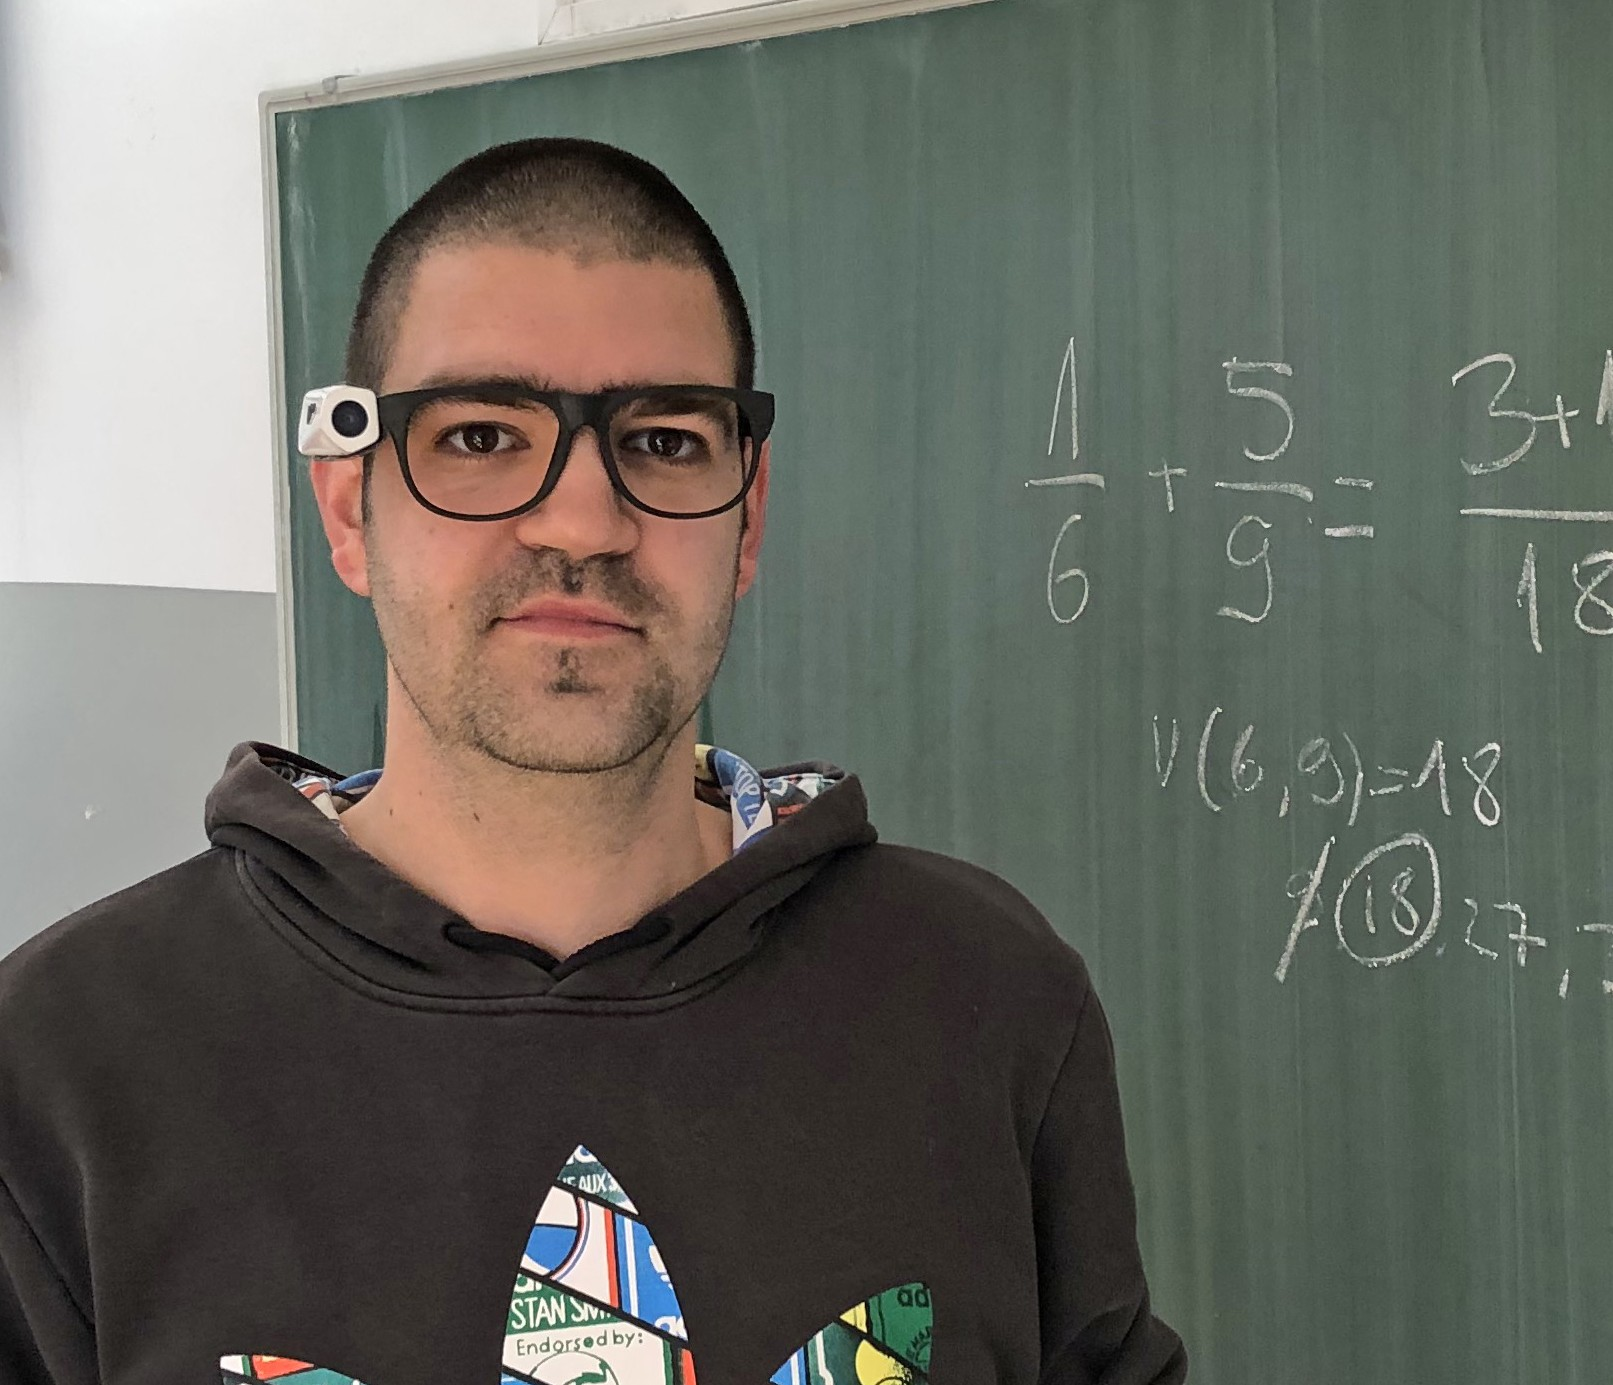 A Teacher Wearing Vyoocam